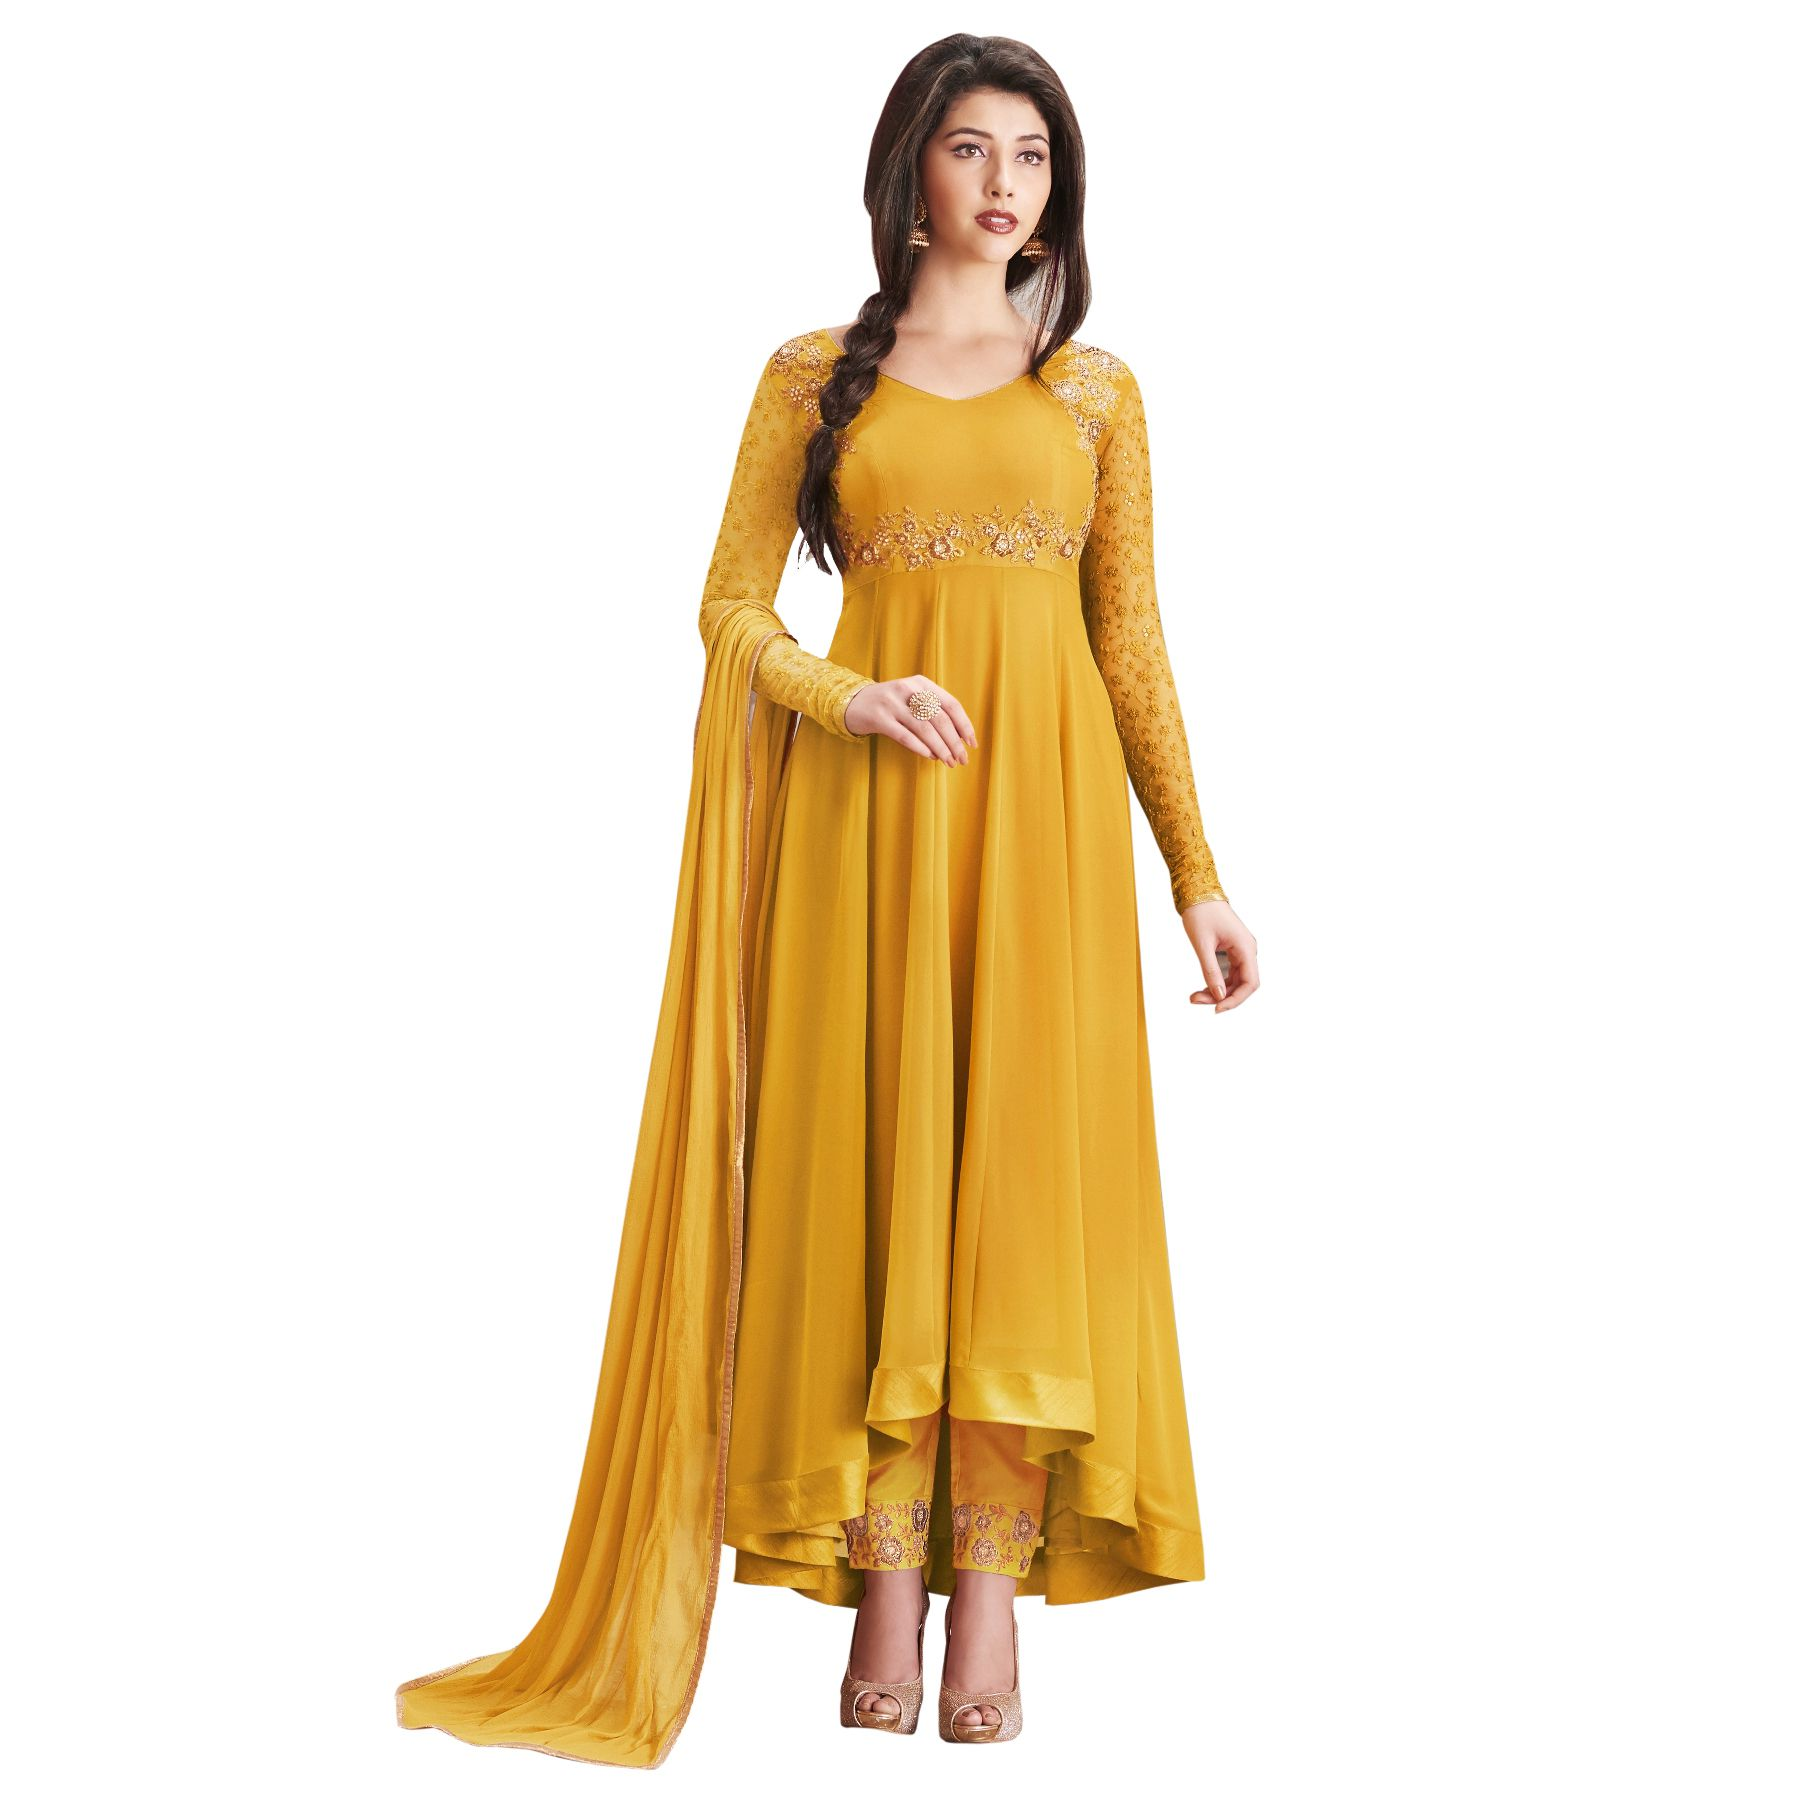 7d2167471e2 New Latest Designer Georgette Embroidered Semi Stitched Long Anarkali Suit  - Buy New Latest Designer Georgette Embroidered Semi Stitched Long Anarkali  Suit ...